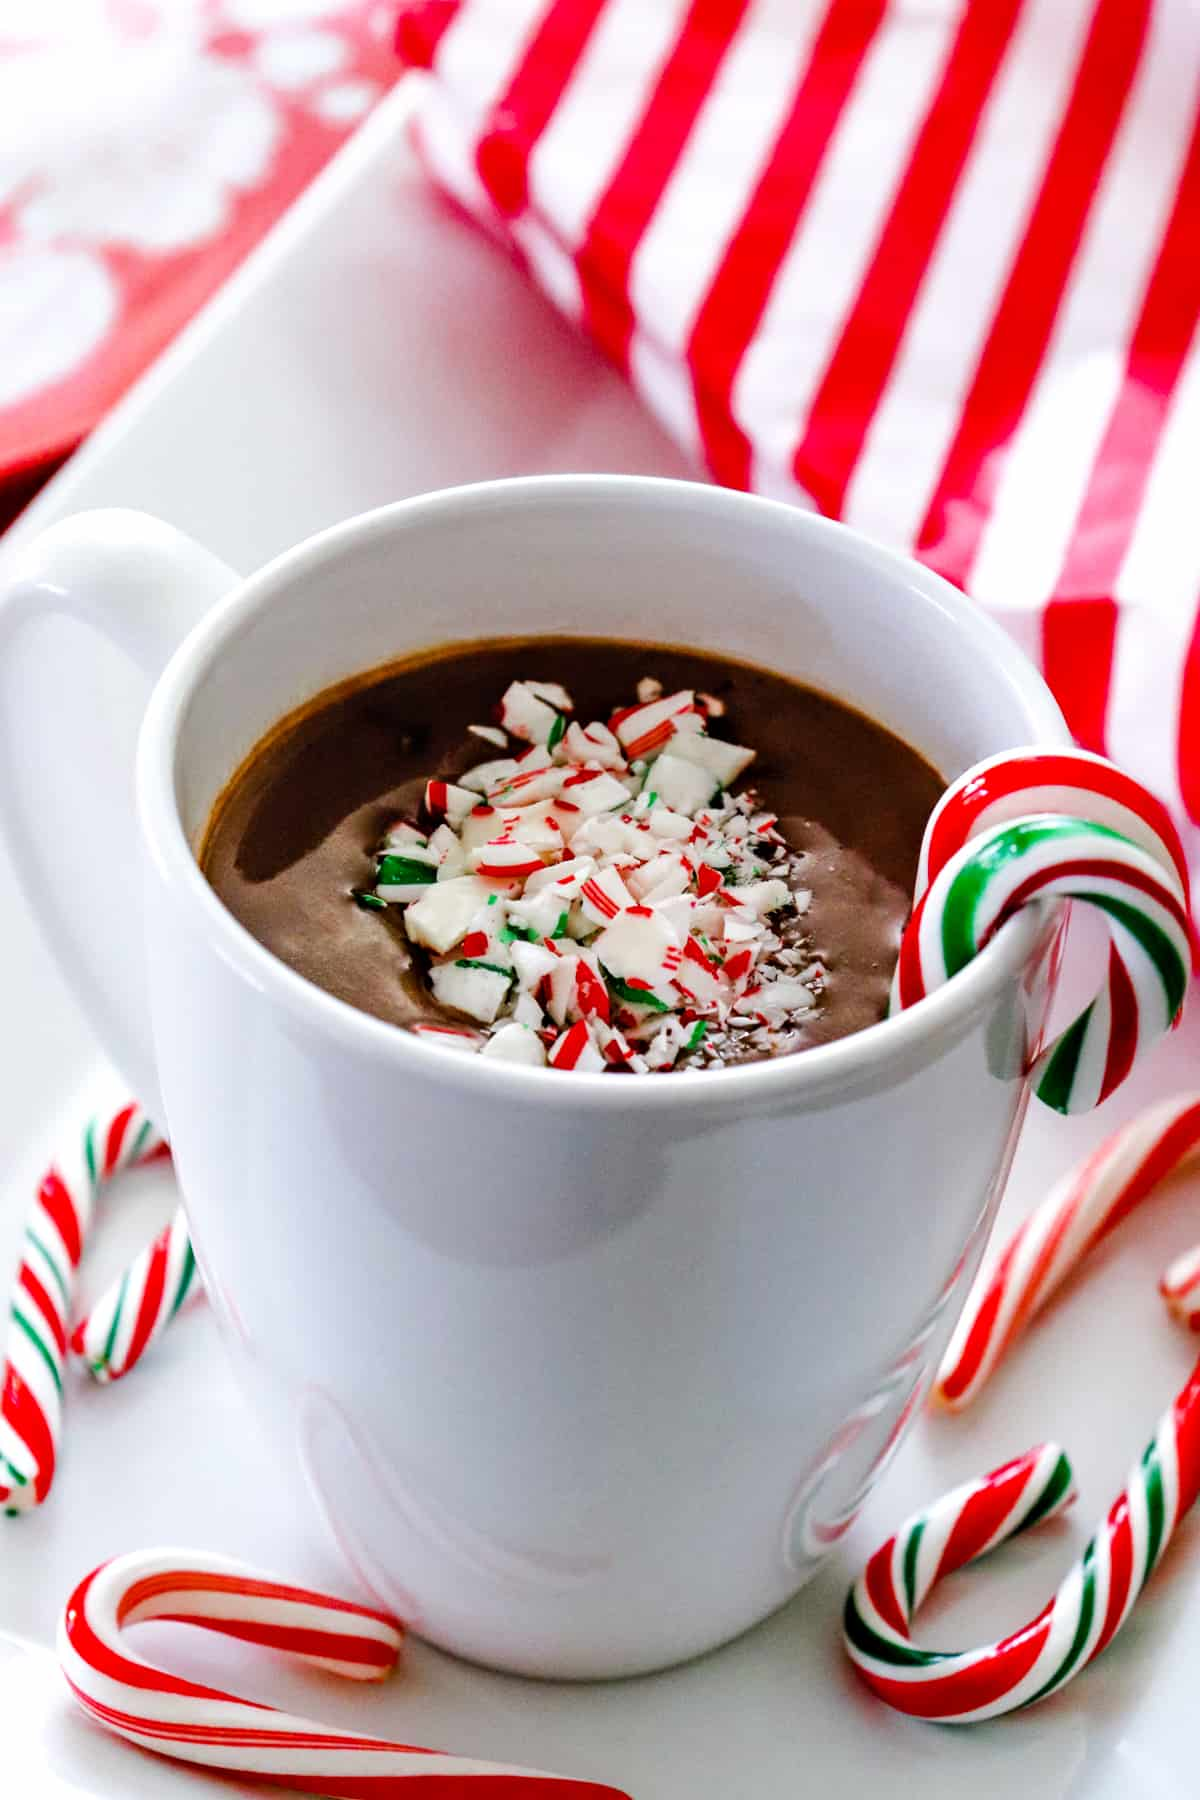 Peppermint French hot chocolate with candy canes